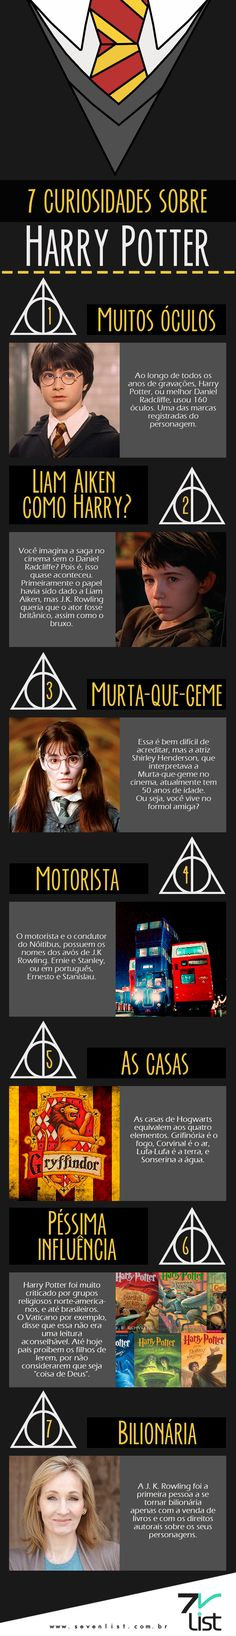 O tempo passa e o bruxinho mais amado de todos os tempos continua mais atual do que nunca. Hoje nós do Seven List separamos 7 curiosidades sobre Harry Potter. #SevenList #HarryPotter #Cinema #Filmes #Movies #Cine #Cinemark #ComicCon #CCXP #Filme #AnimaisFantásticos #Magic #Infográfico #Art Harry James Potter, Harry Ptter, Magia Harry Potter, Mundo Harry Potter, Harry Potter Tumblr, Harry Potter Facts, Harry Potter Fan Art, Harry Potter Universal, Harry Potter World